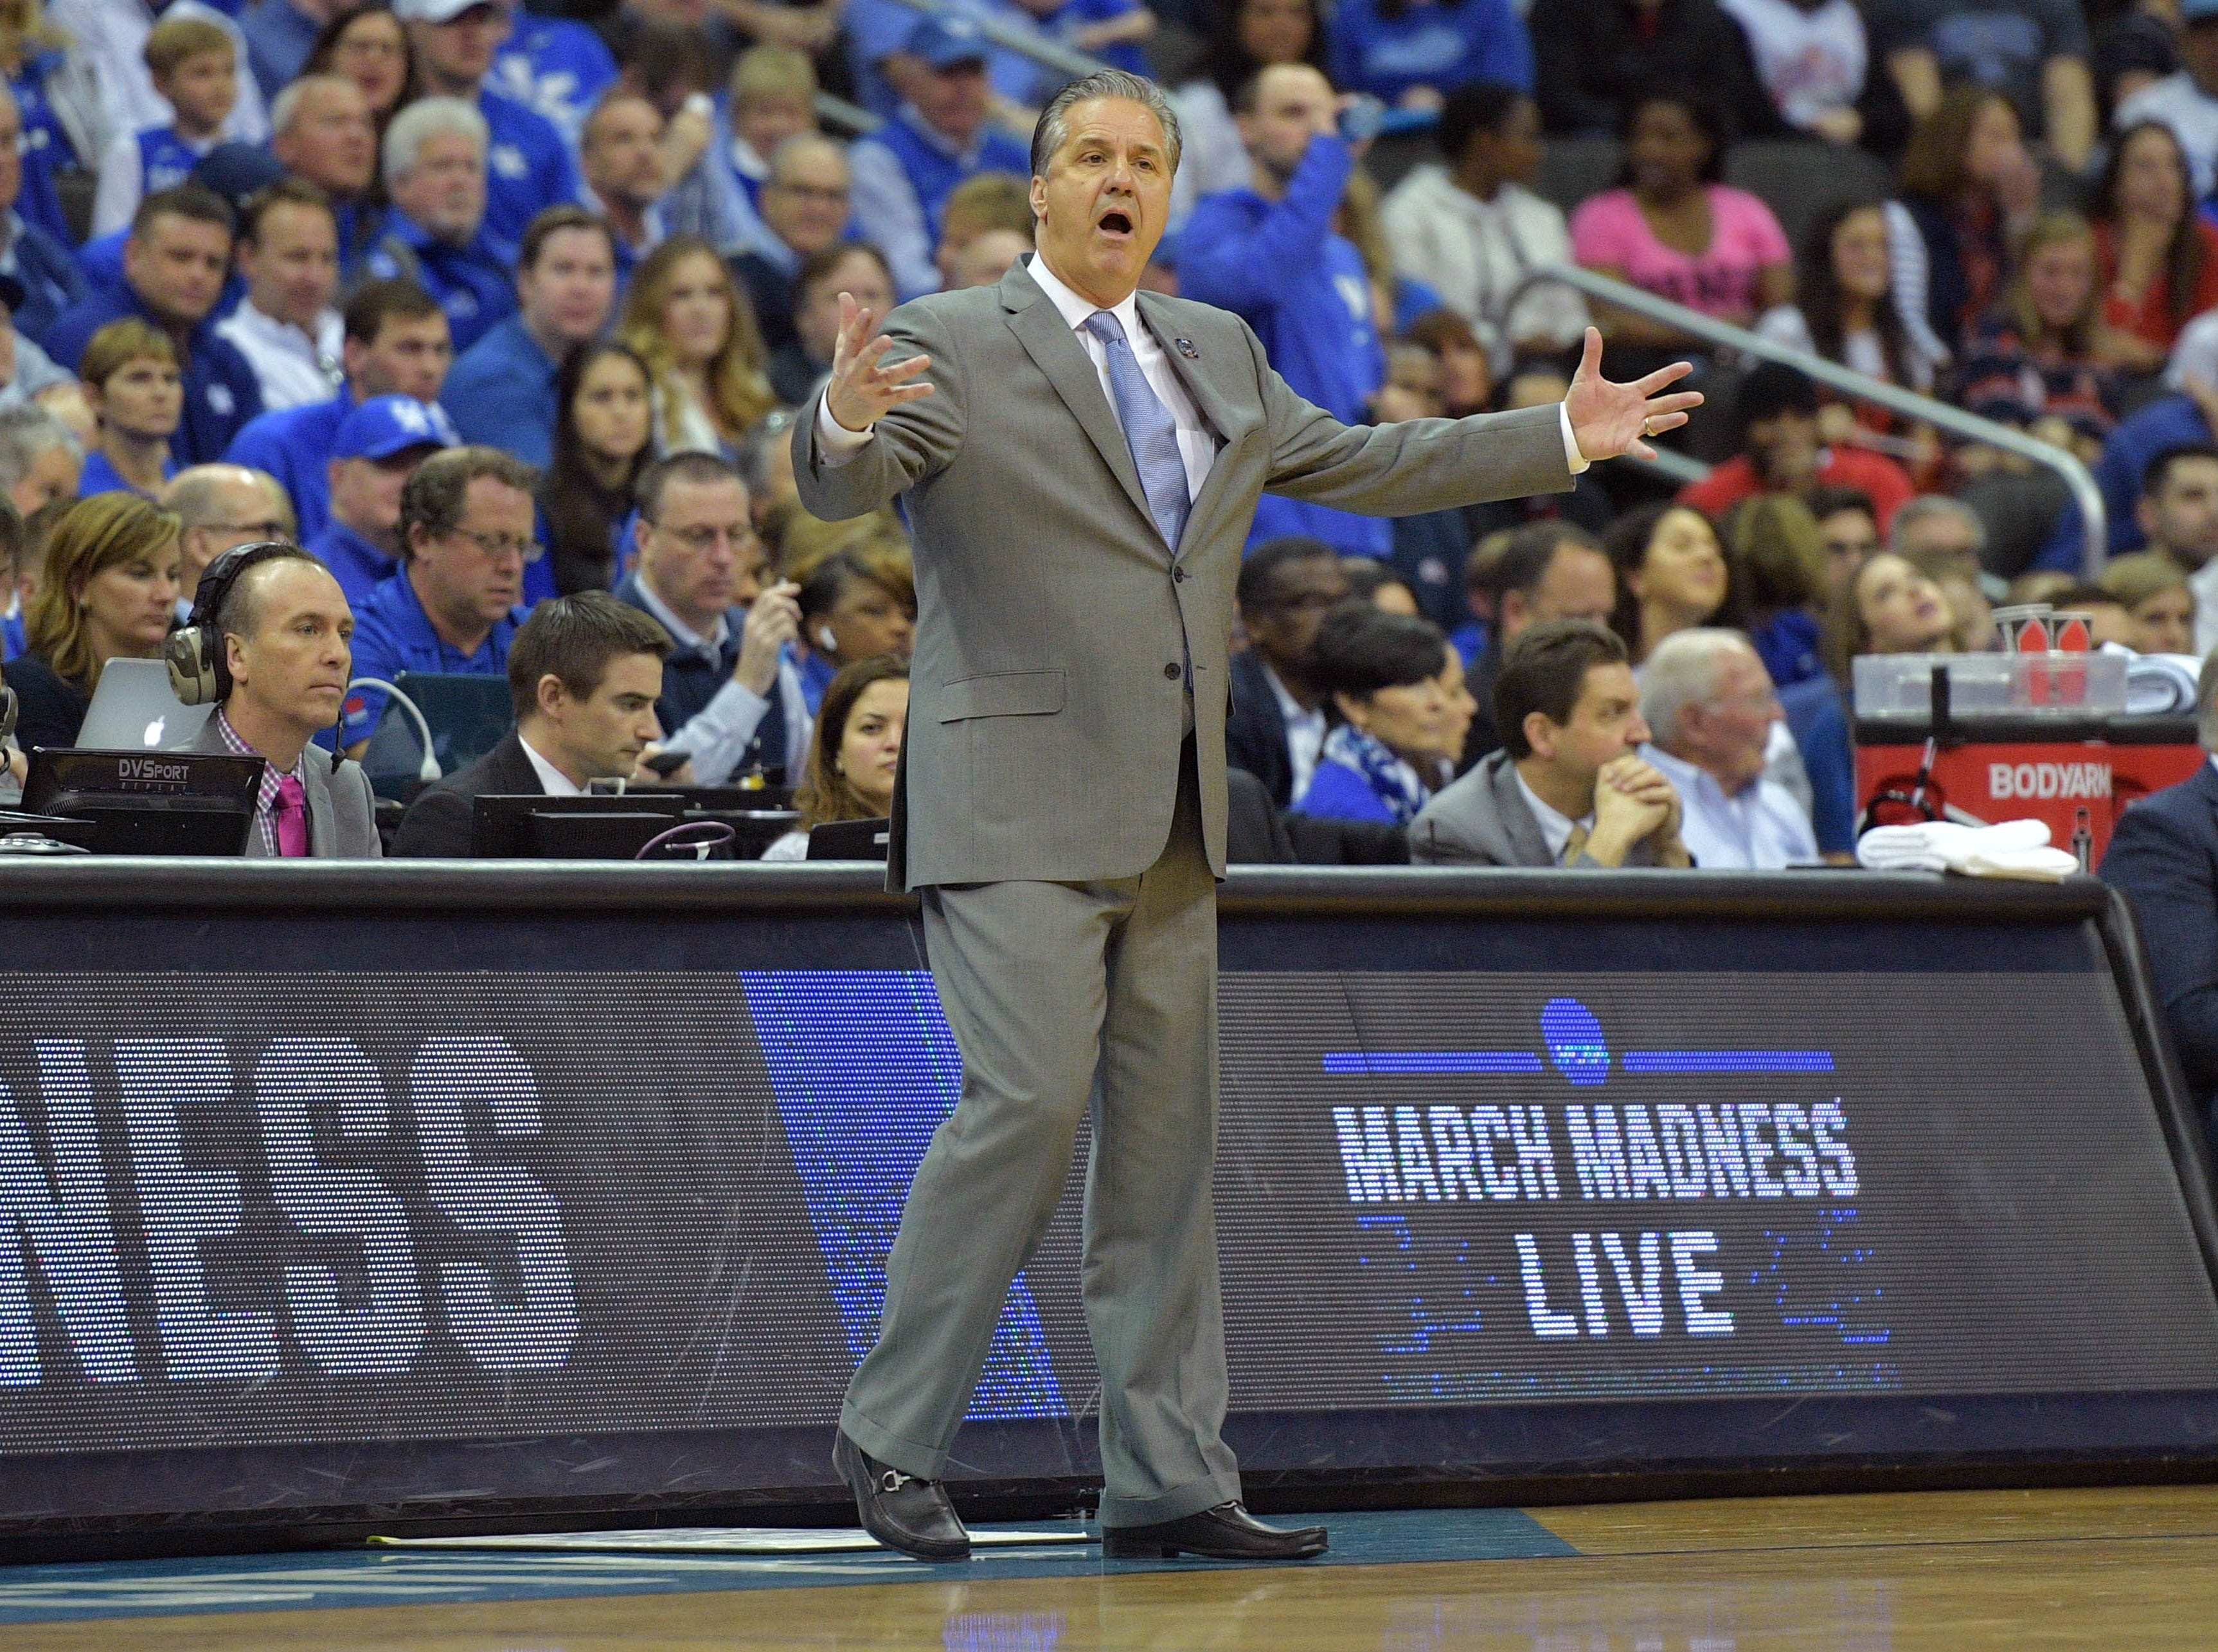 Mar 31, 2019; Kansas City, MO, United States; Kentucky Wildcats head coach John Calipari reacts against the Auburn Tigers during the first half in the championship game of the midwest regional of the 2019 NCAA Tournament at Sprint Center. Mandatory Credit: Denny Medley-USA TODAY Sports